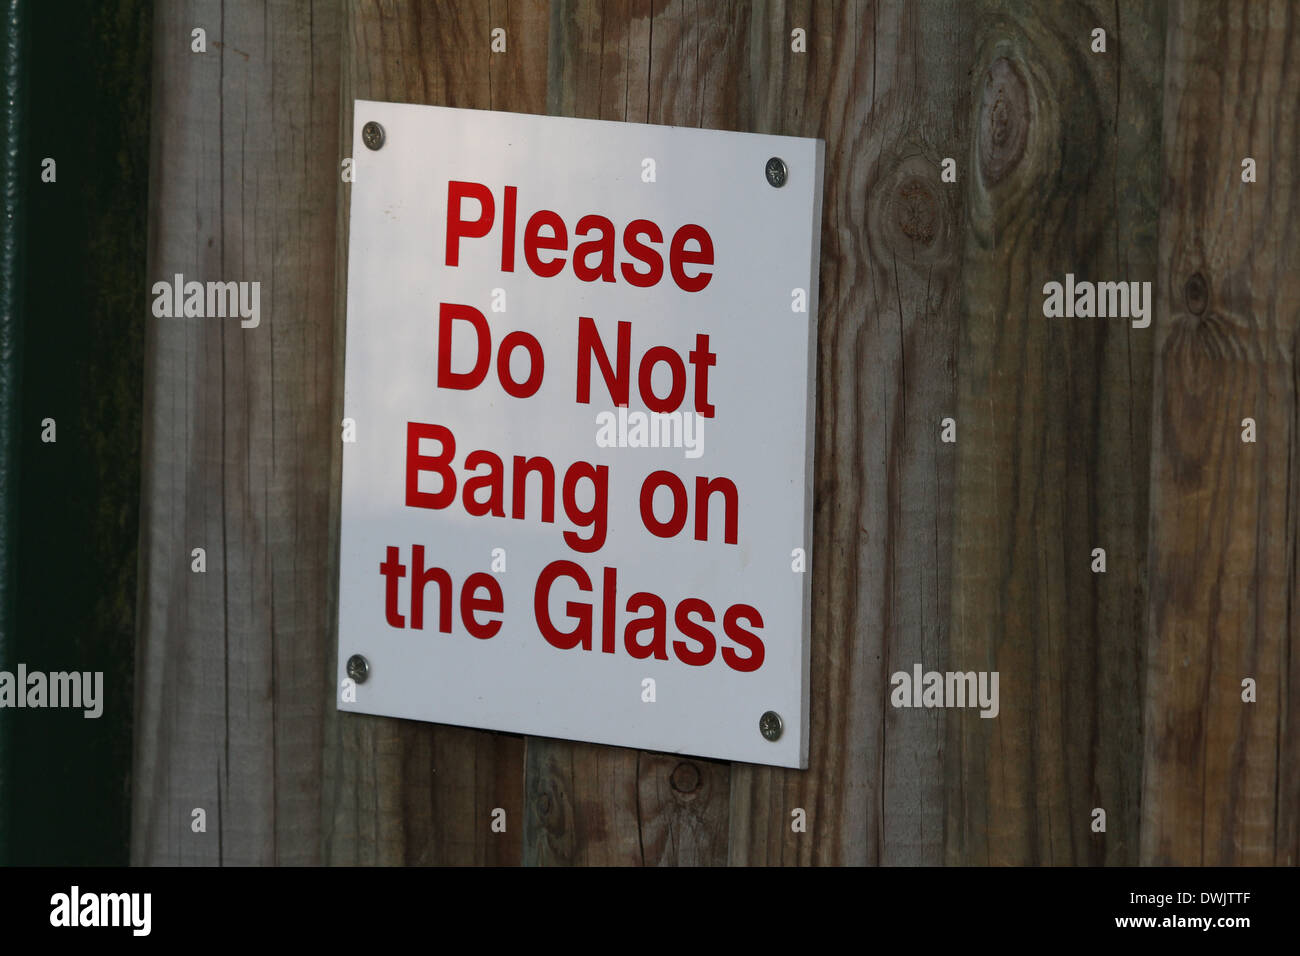 please do not bang on the glass sign screwed o wooded fence - Stock Image